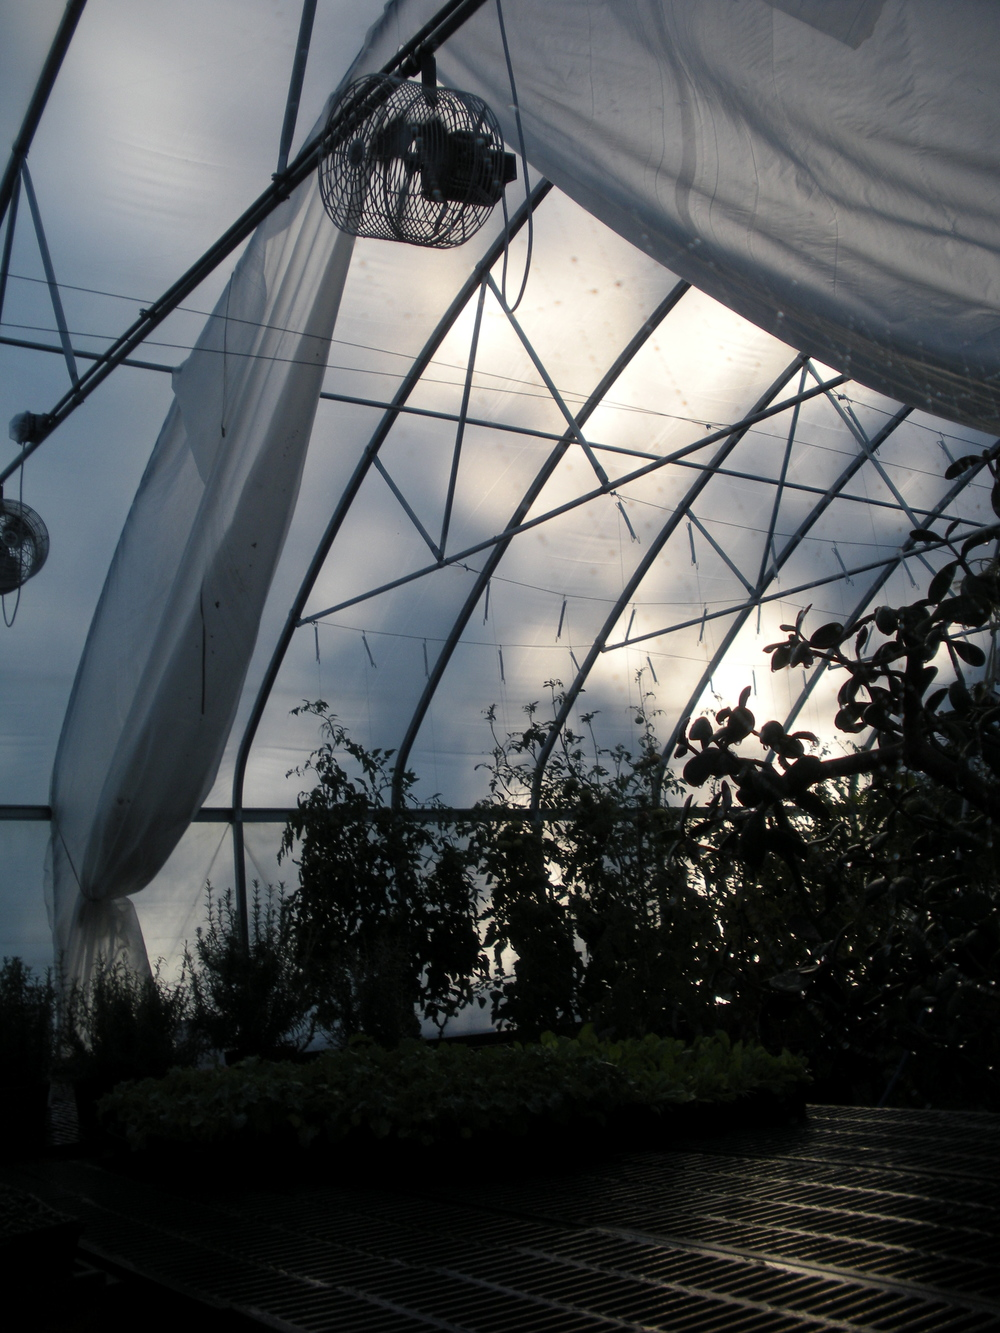 Early morning in the greenhouse